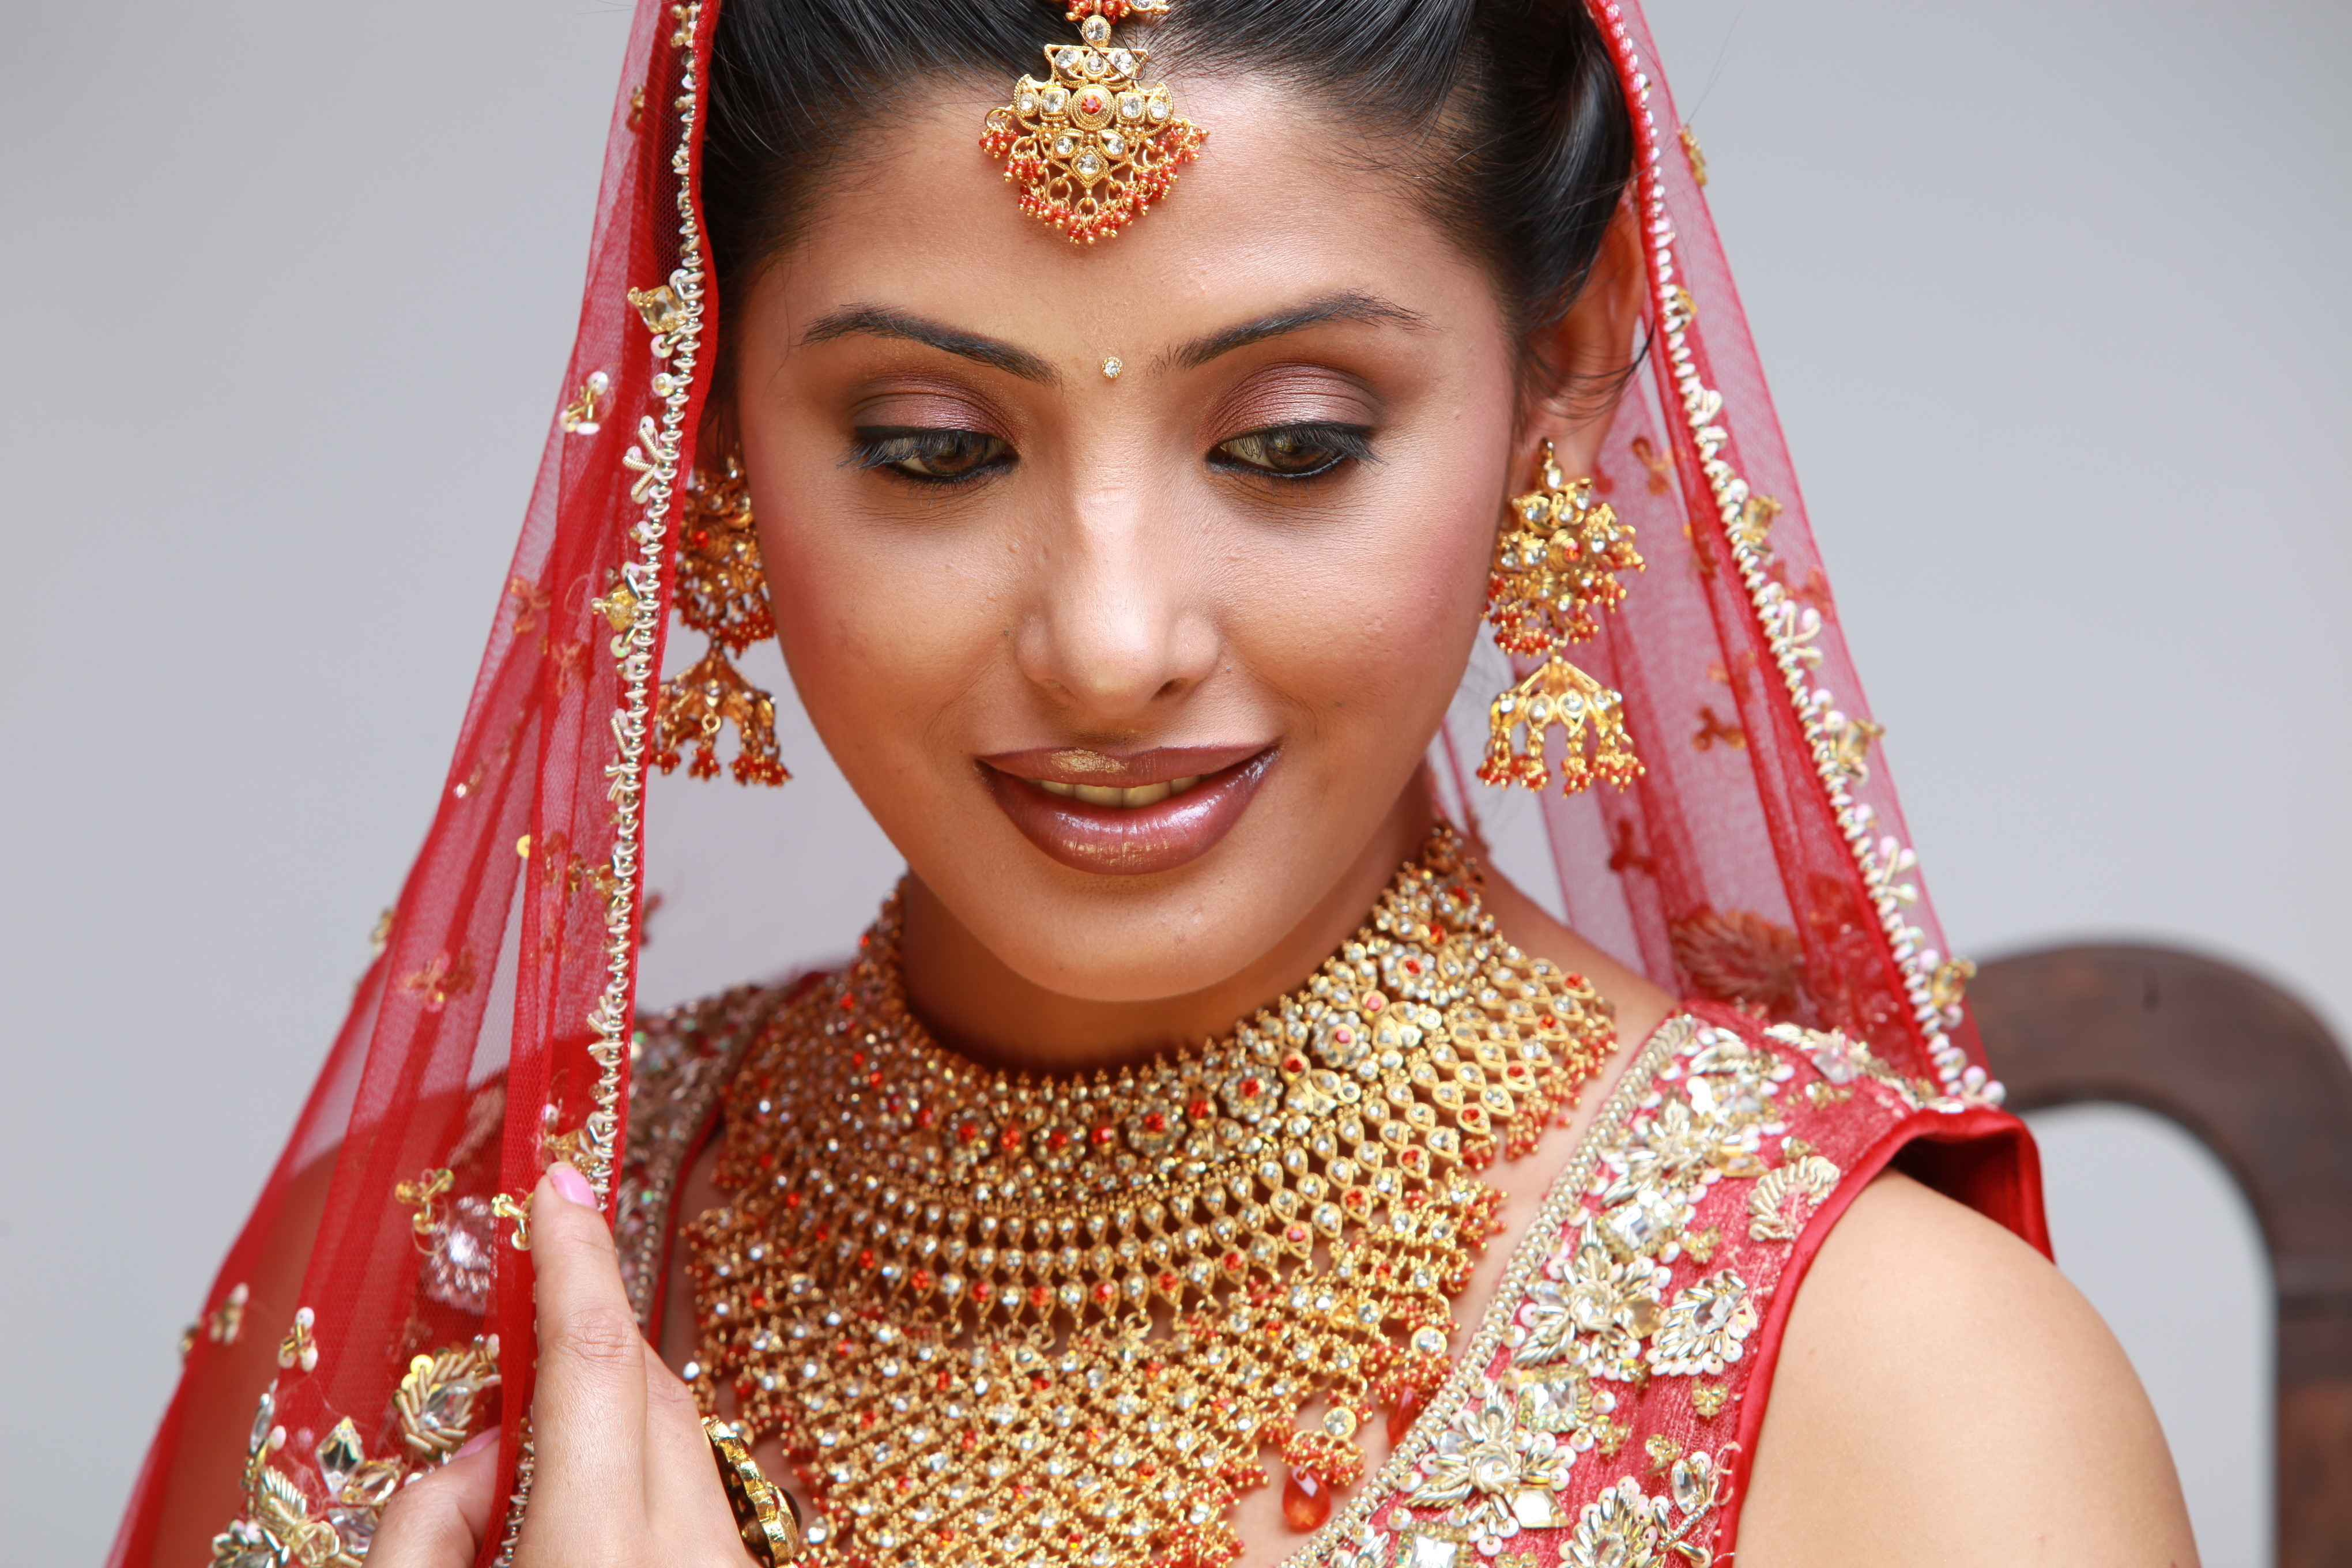 Indian bride in traditional bridal sari